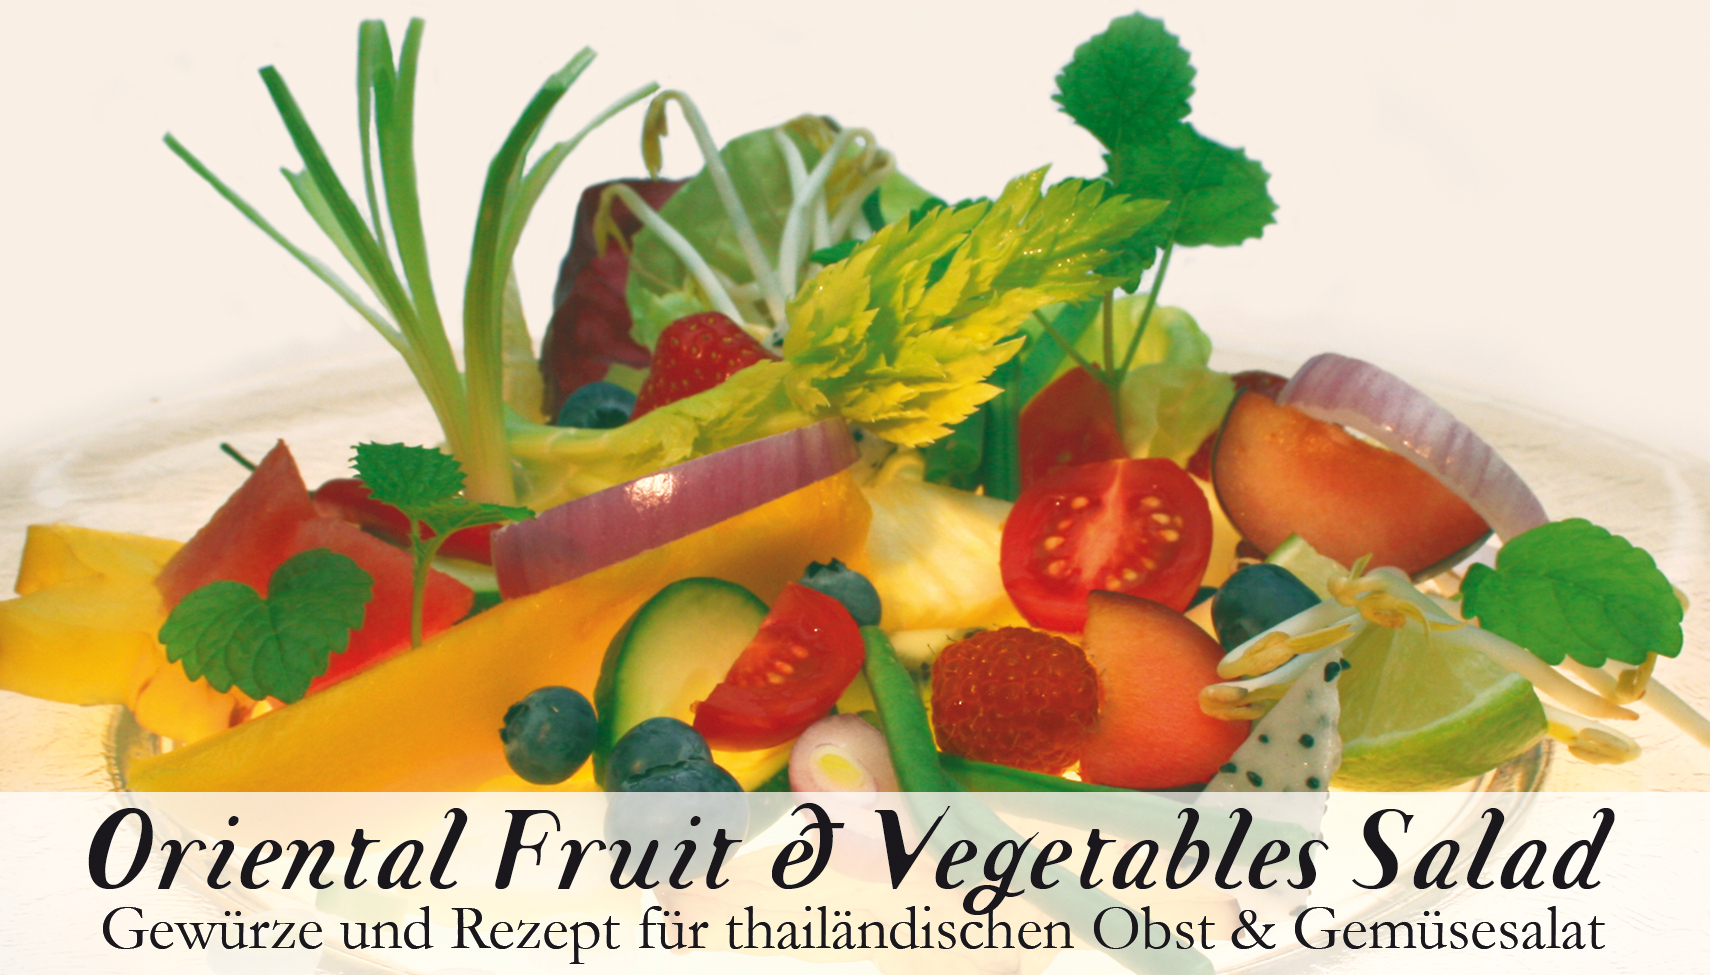 Oriental Fruit & Vegetable Salad